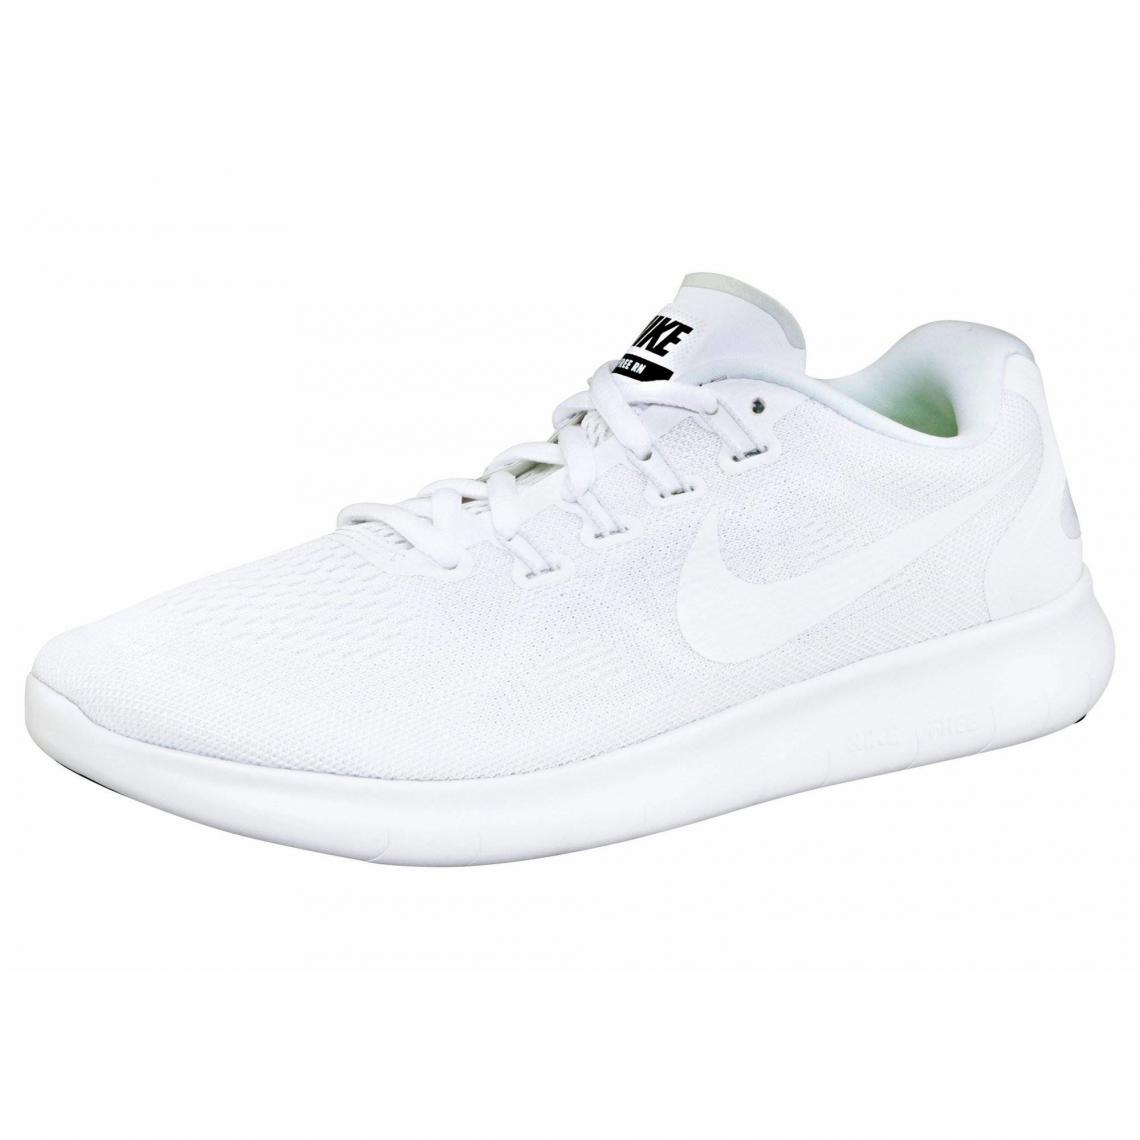 on sale 82c9a b17b5 Chaussures de sport Nike